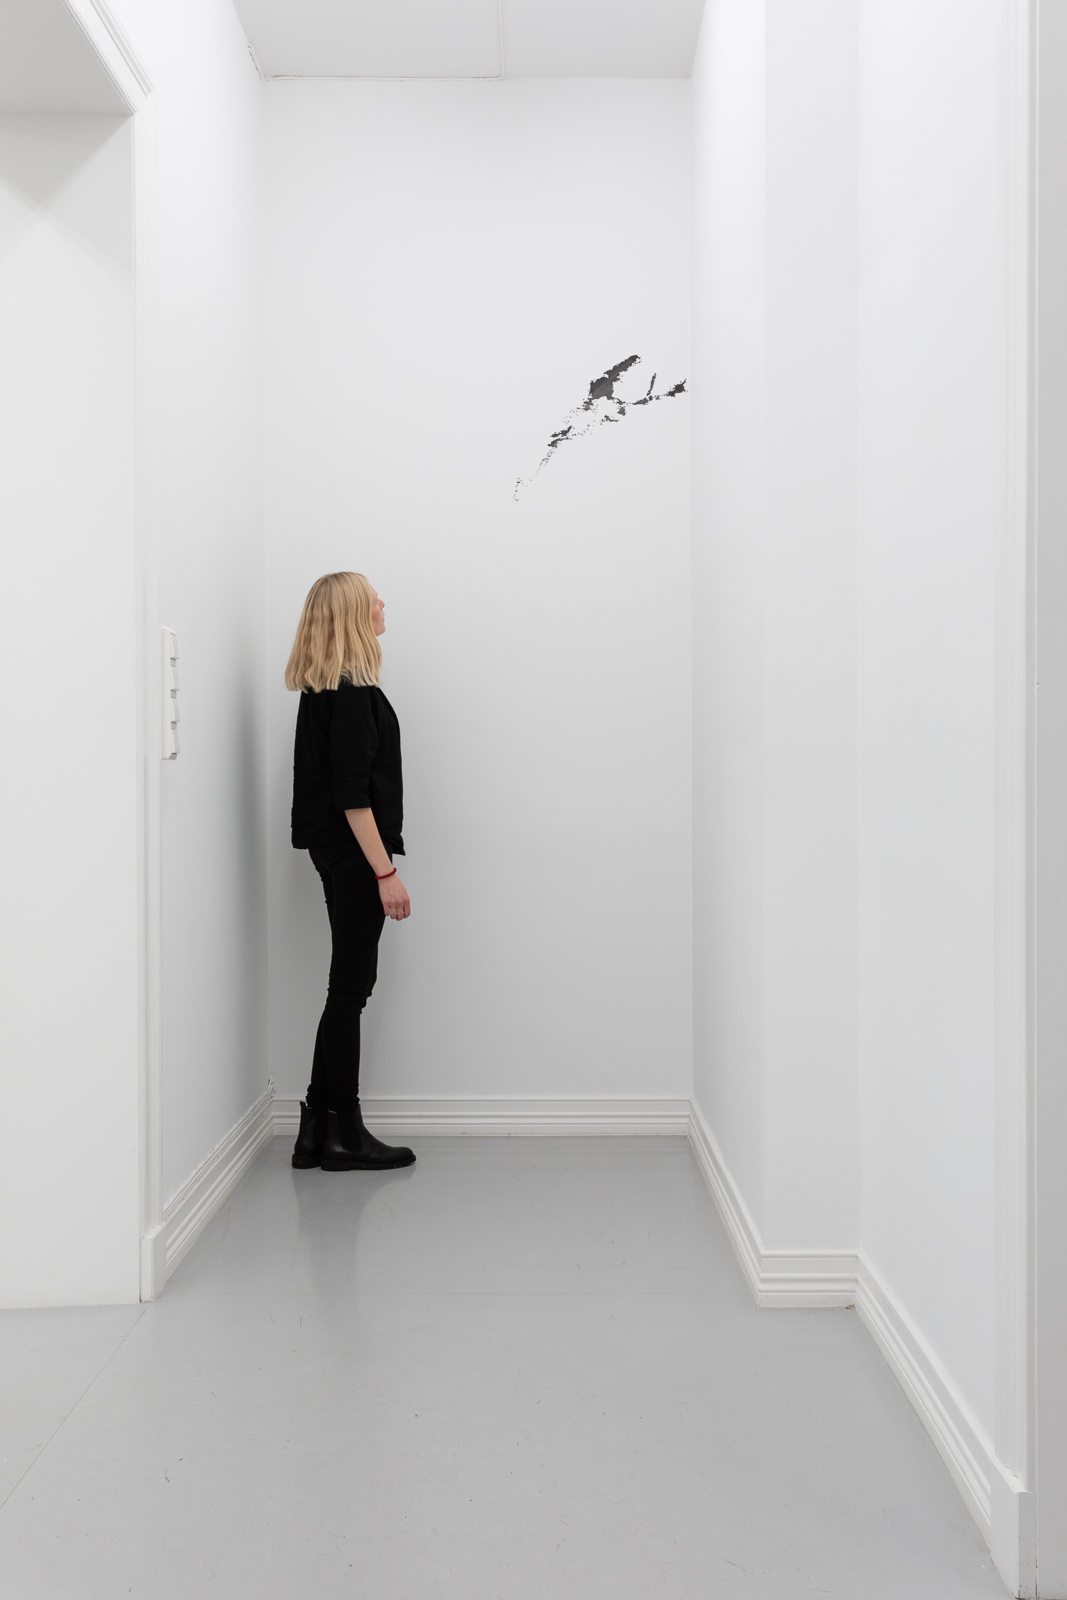 Wall Drawing for Galleri Riis I, 2019. Crayon on wall, H 324 x W 135 cm. Unique